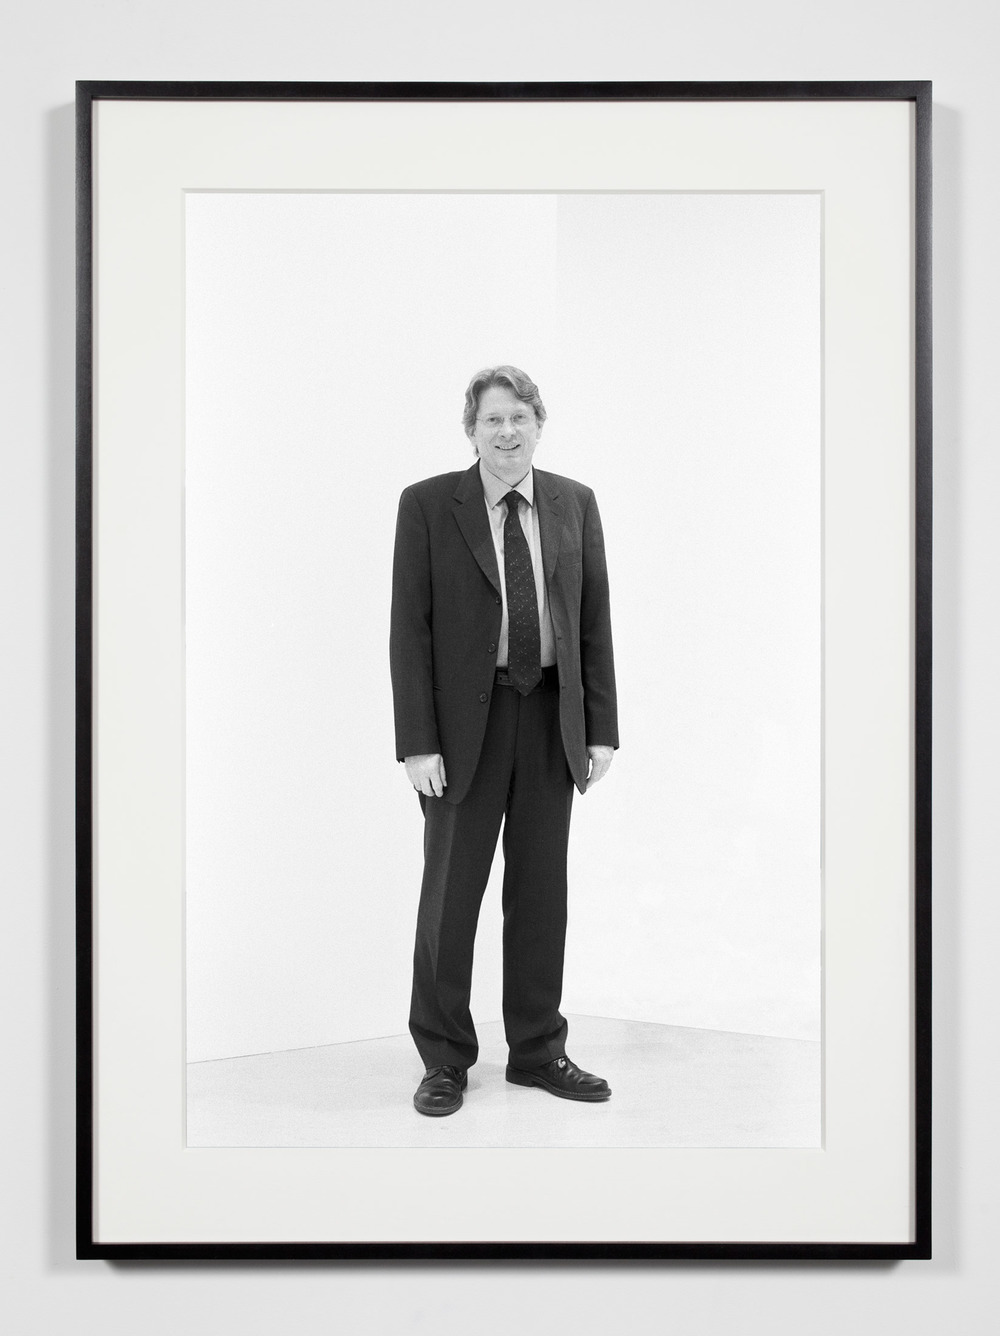 Museum Chief Curator, Washington, District of Columbia, April 29, 2009    2011   Epson Ultrachrome K3 archival ink jet print on Hahnemühle Photo Rag paper  36 3/8 x 26 3/8 inches   Industrial Portraits, 2008–